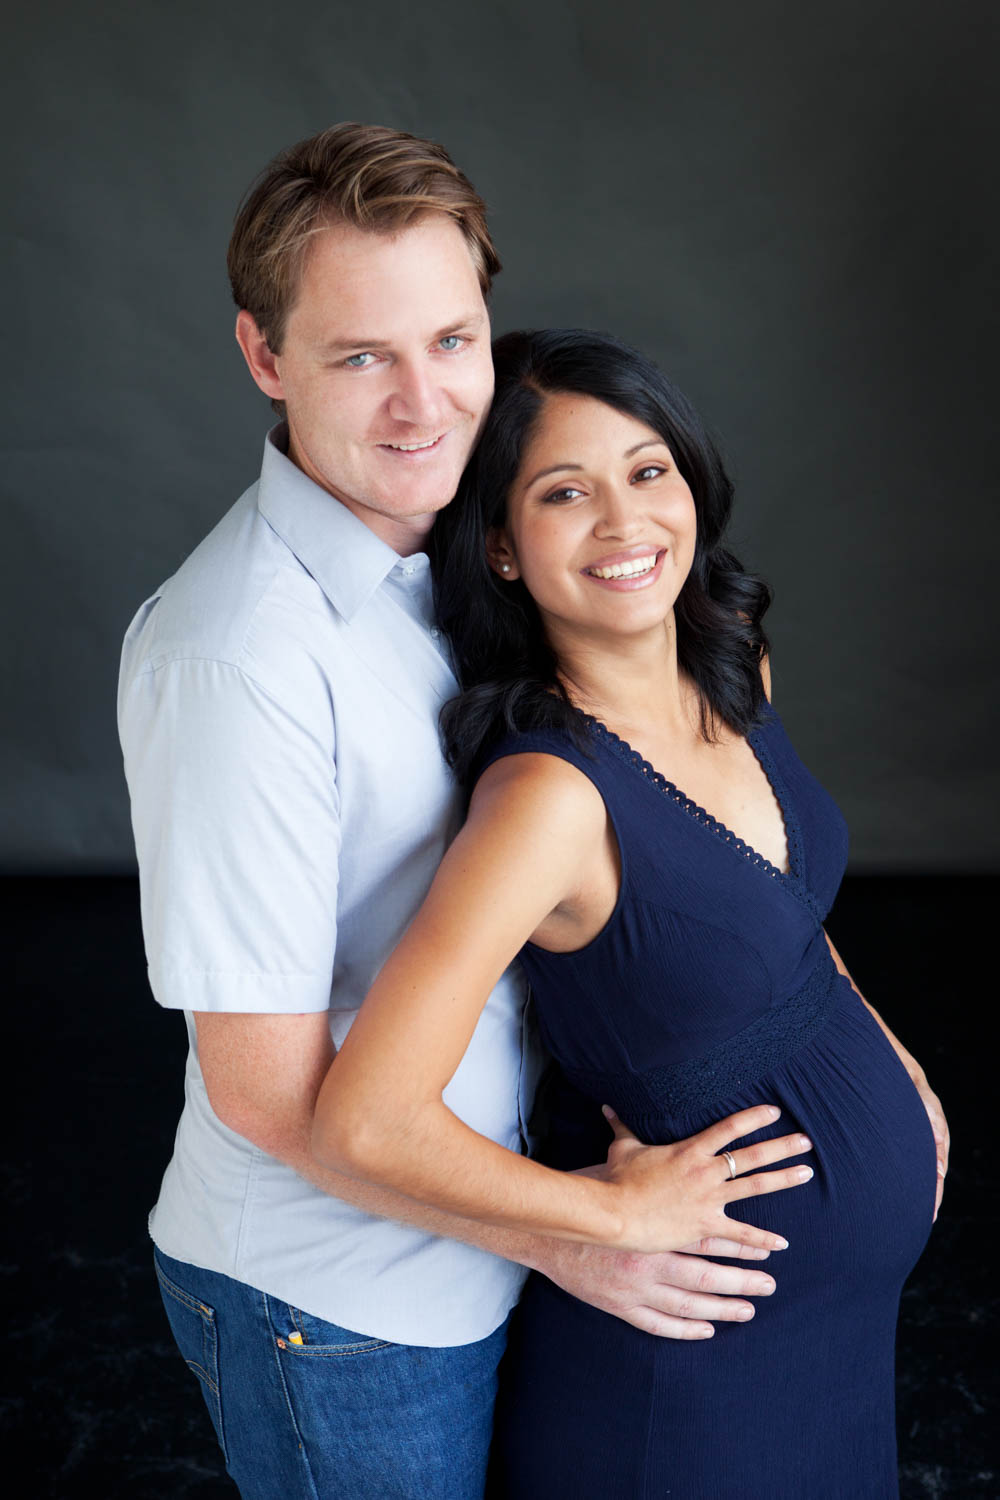 Pregnancy_Maternity_Photoshoot_Auckland_17913_1767.jpg